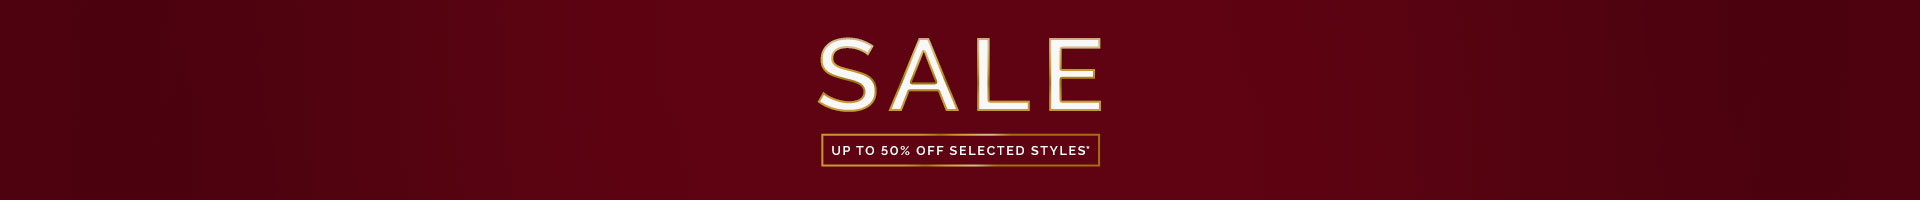 Suit Jackets Sale Banner